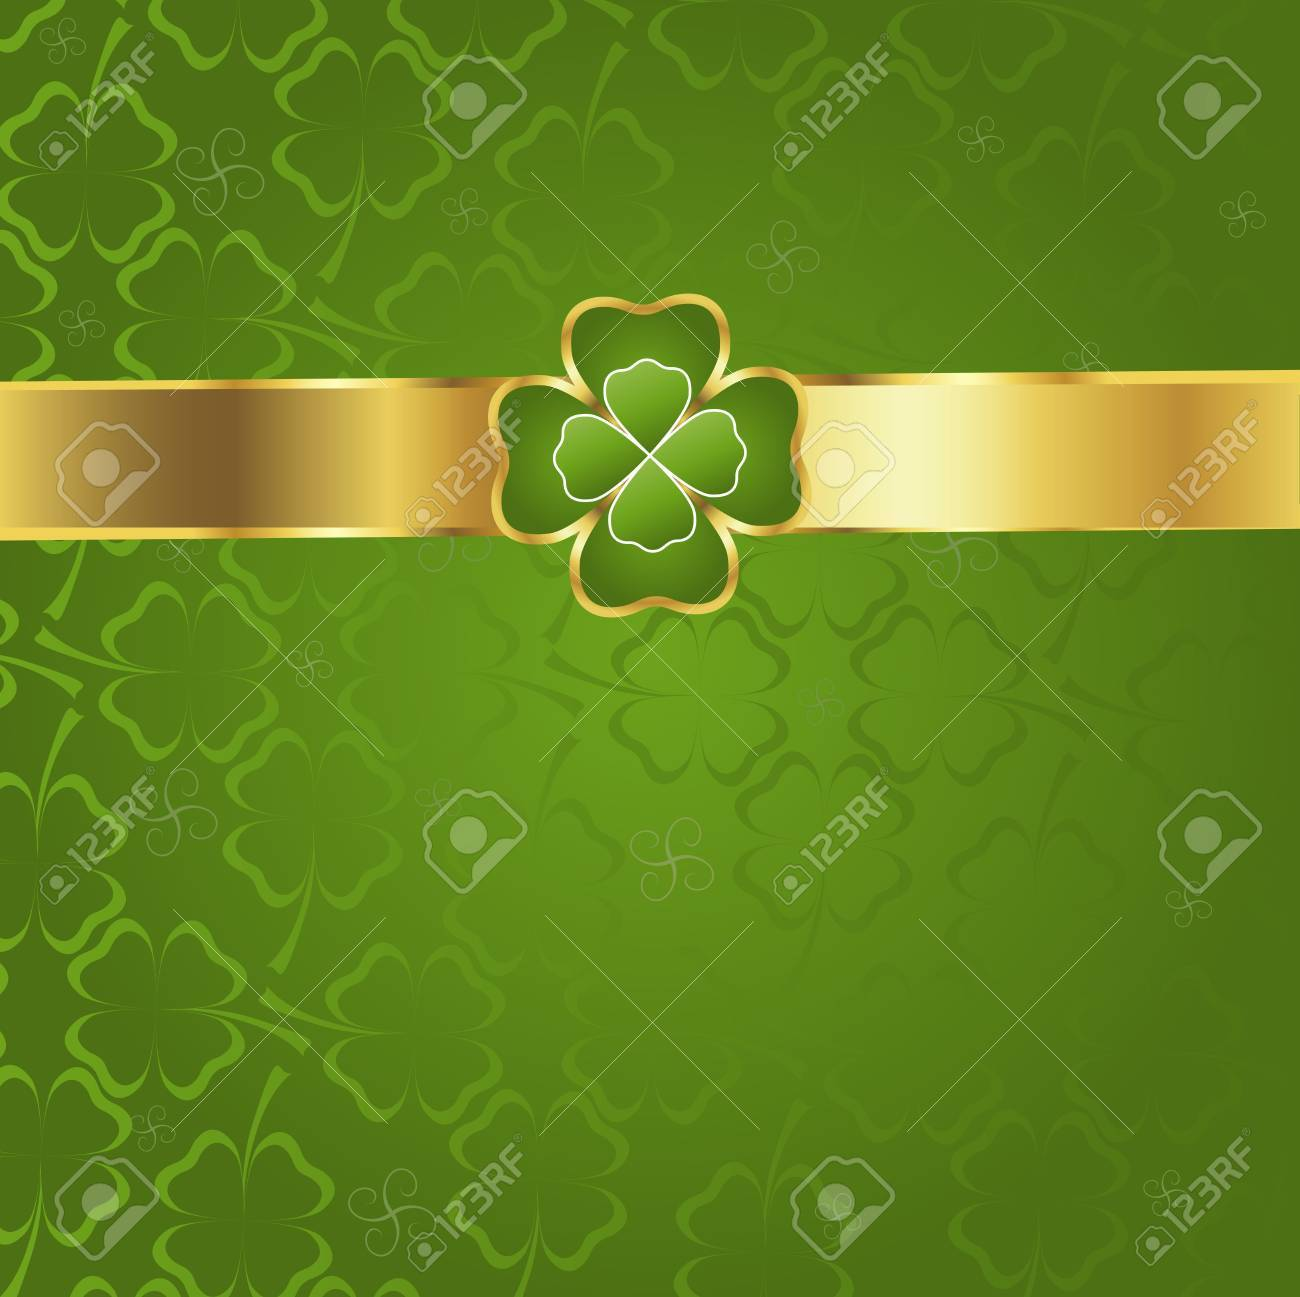 clover background Stock Photo - 6297300